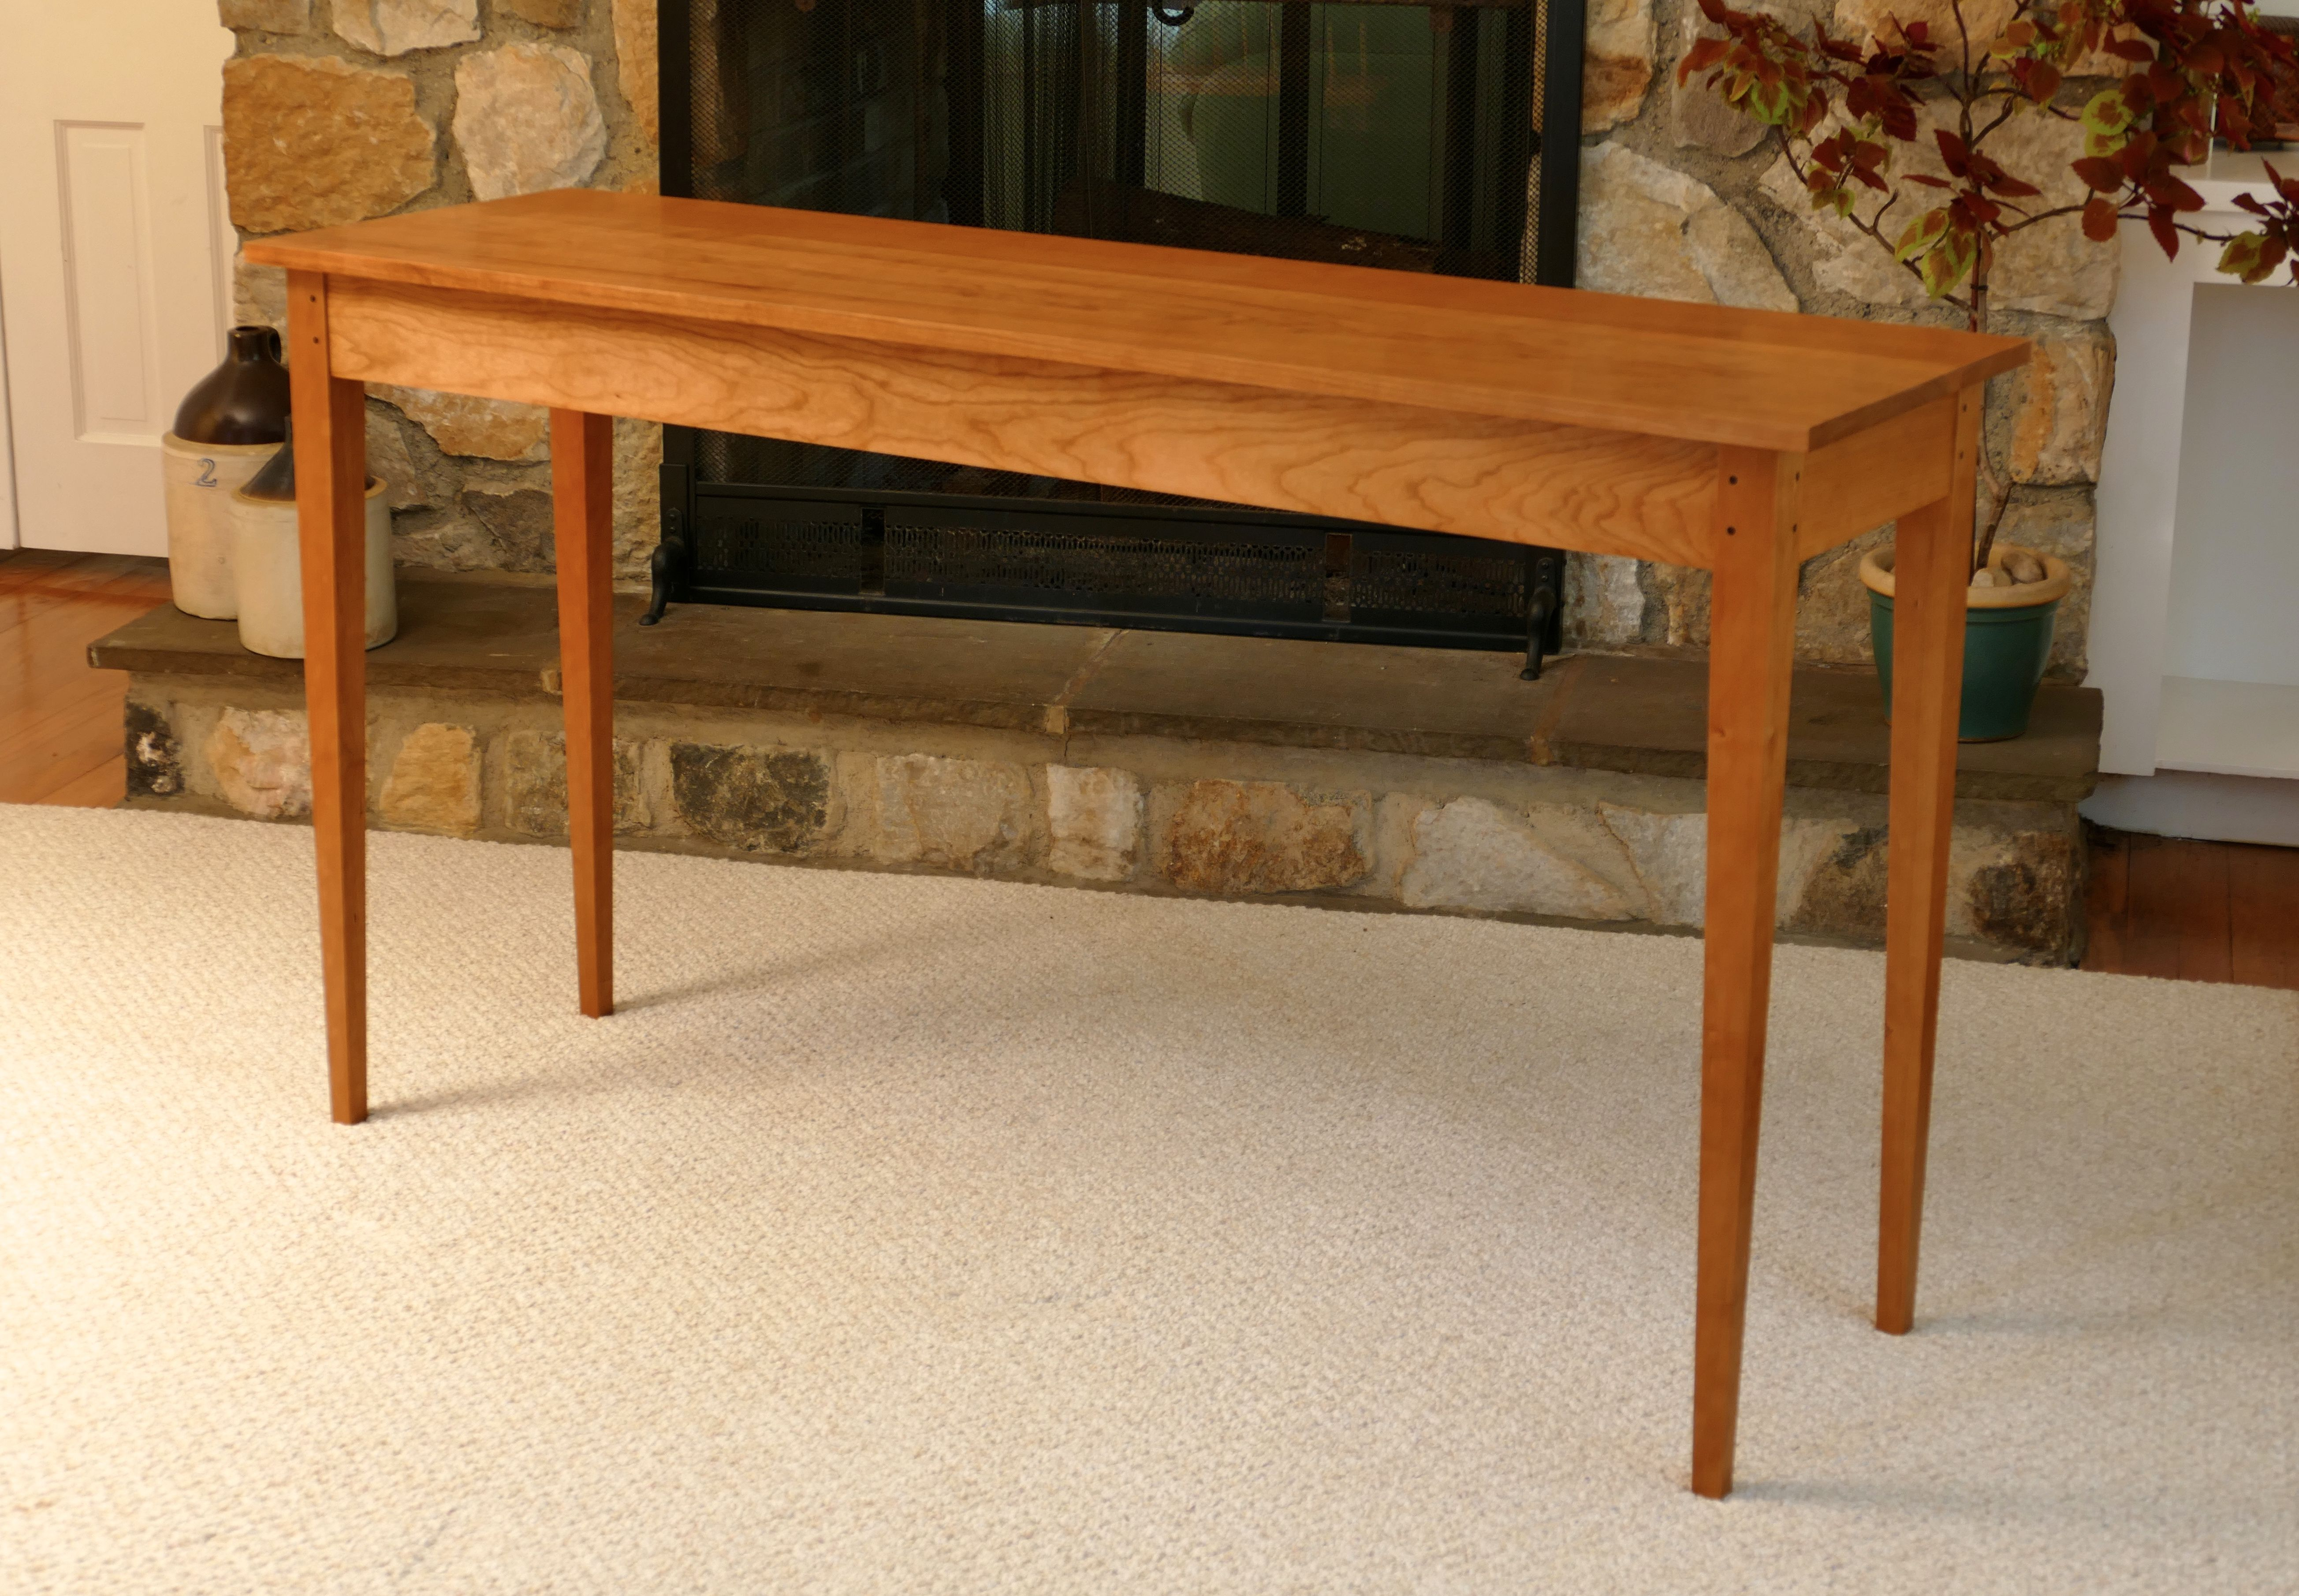 Shaker hall table made from pennsylvania cherry mortise and tenon joinery elegant tapered legs 60 l x 18 w x 34 h